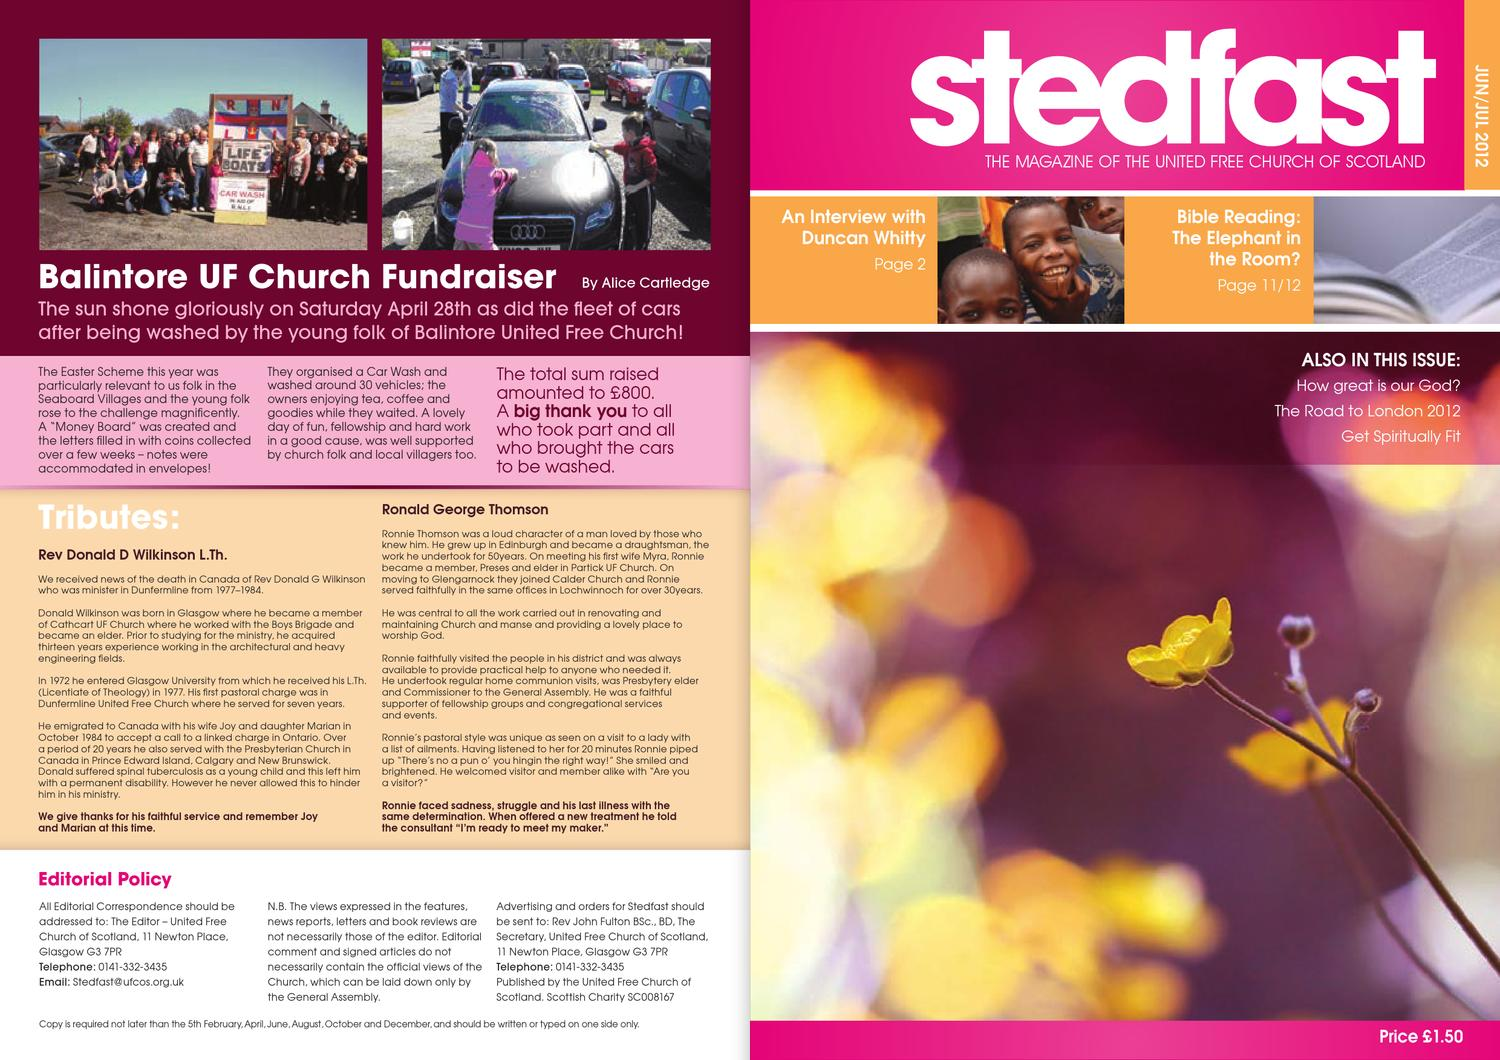 Steadfast June 2012 by Colin McDowall - issuu